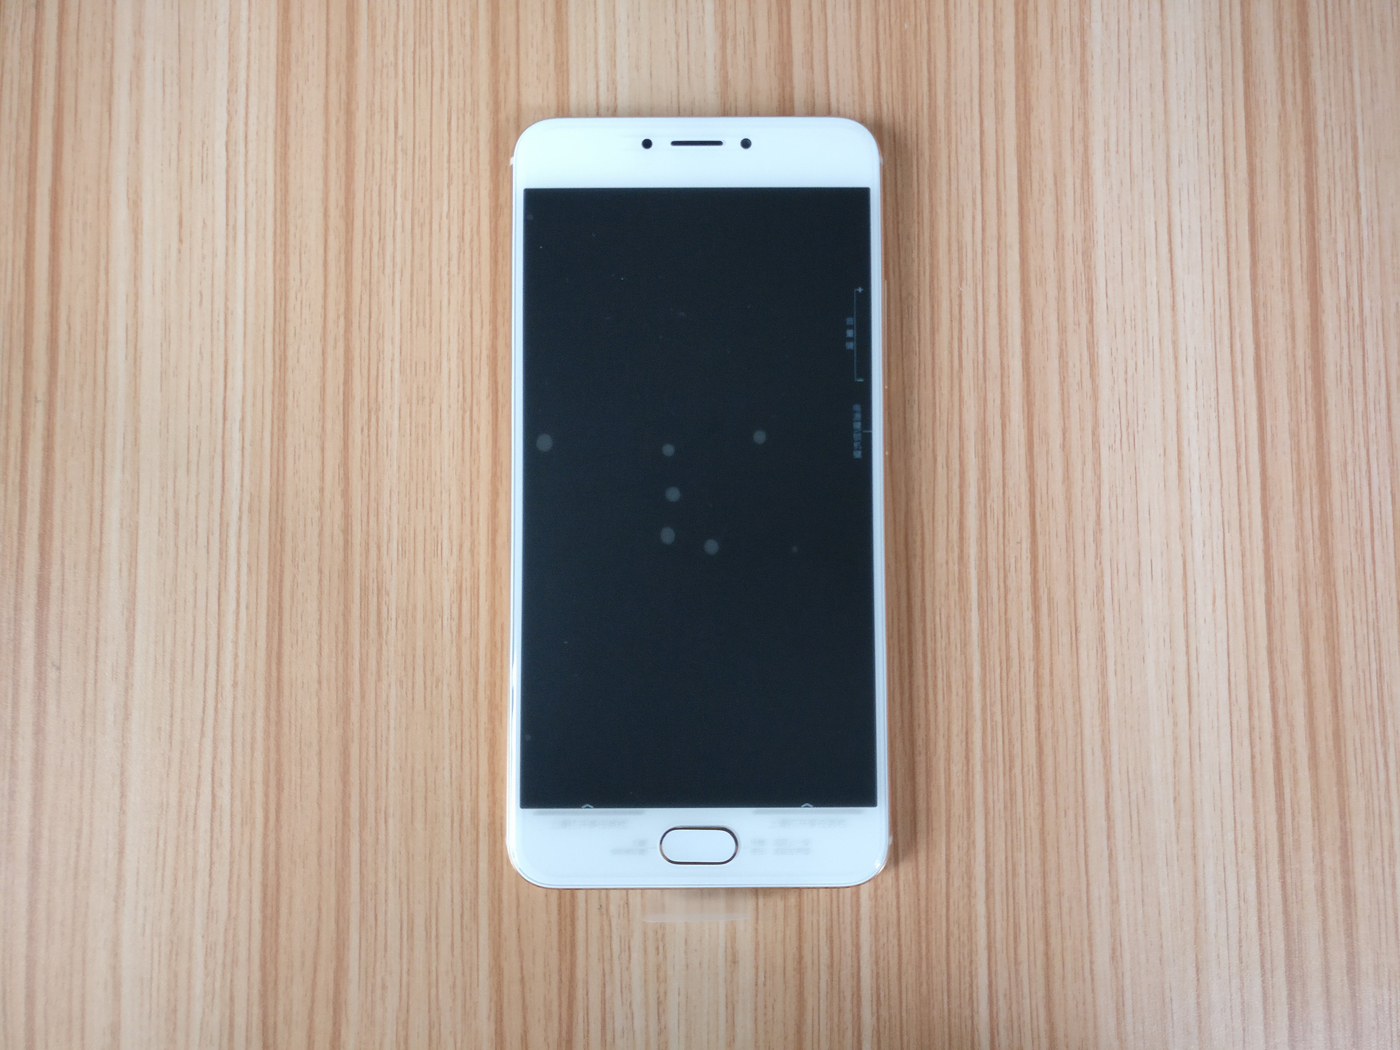 To2ccom Blog Meizu Mx6 Real Life Images Unboxing Pictures 32gb Ram 4gb Gold The Details Of Being Photographed Colorgold Ram4gb Rom32gb